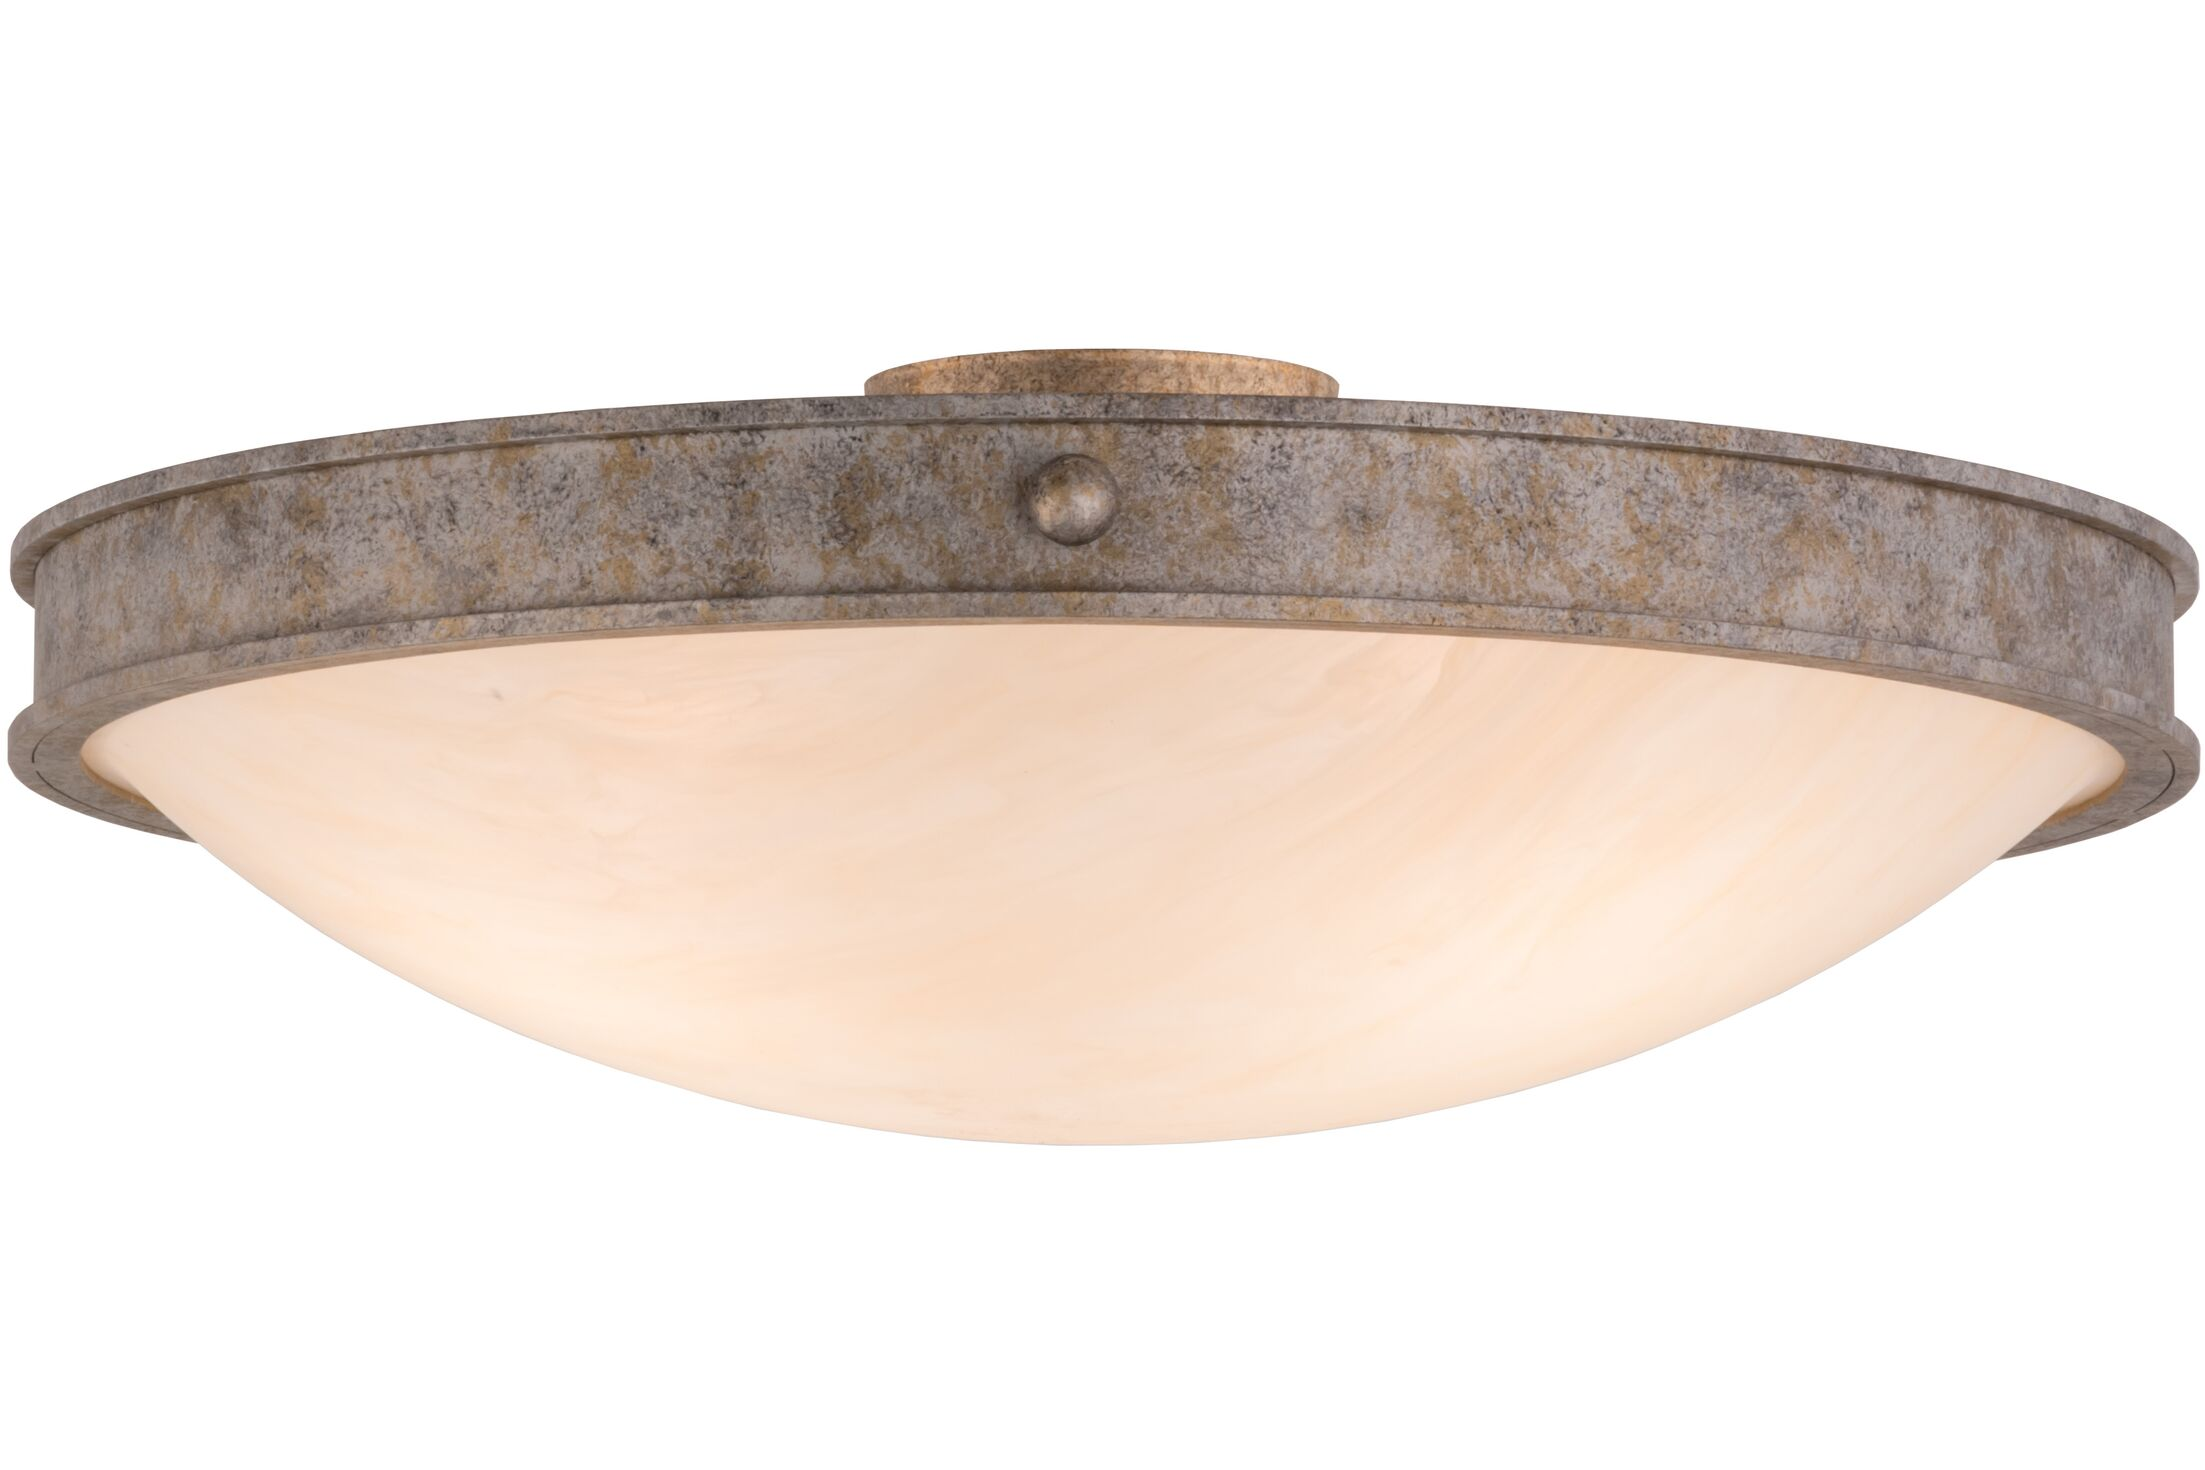 Dionne 3-Light Flush Mount